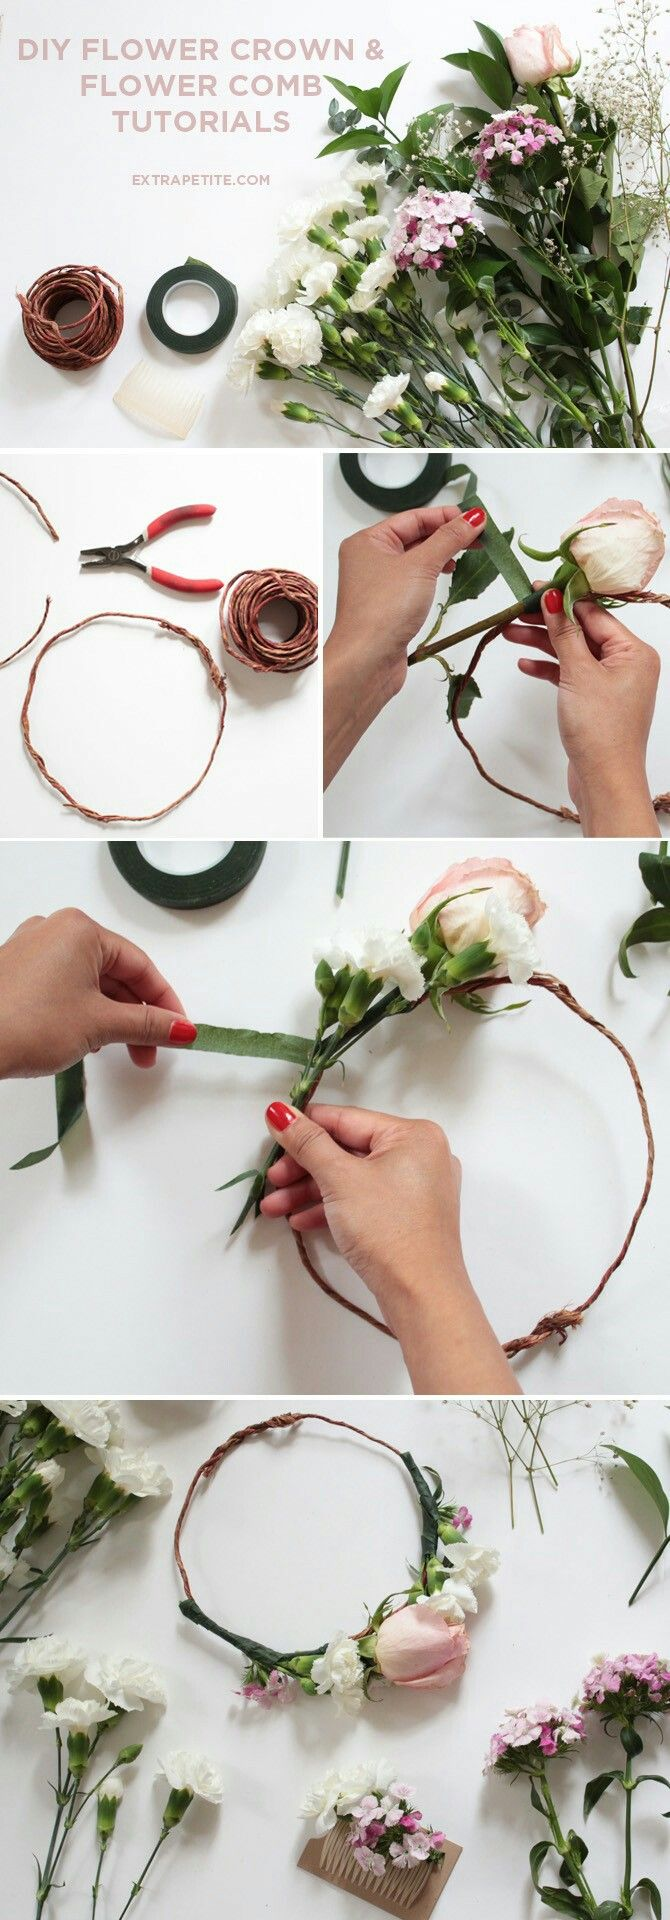 Pin by serena schaugaard on activity days pinterest flower flower crown comb diy tutorial bridal shower activity a more simple tutorial for everyone the day of izmirmasajfo